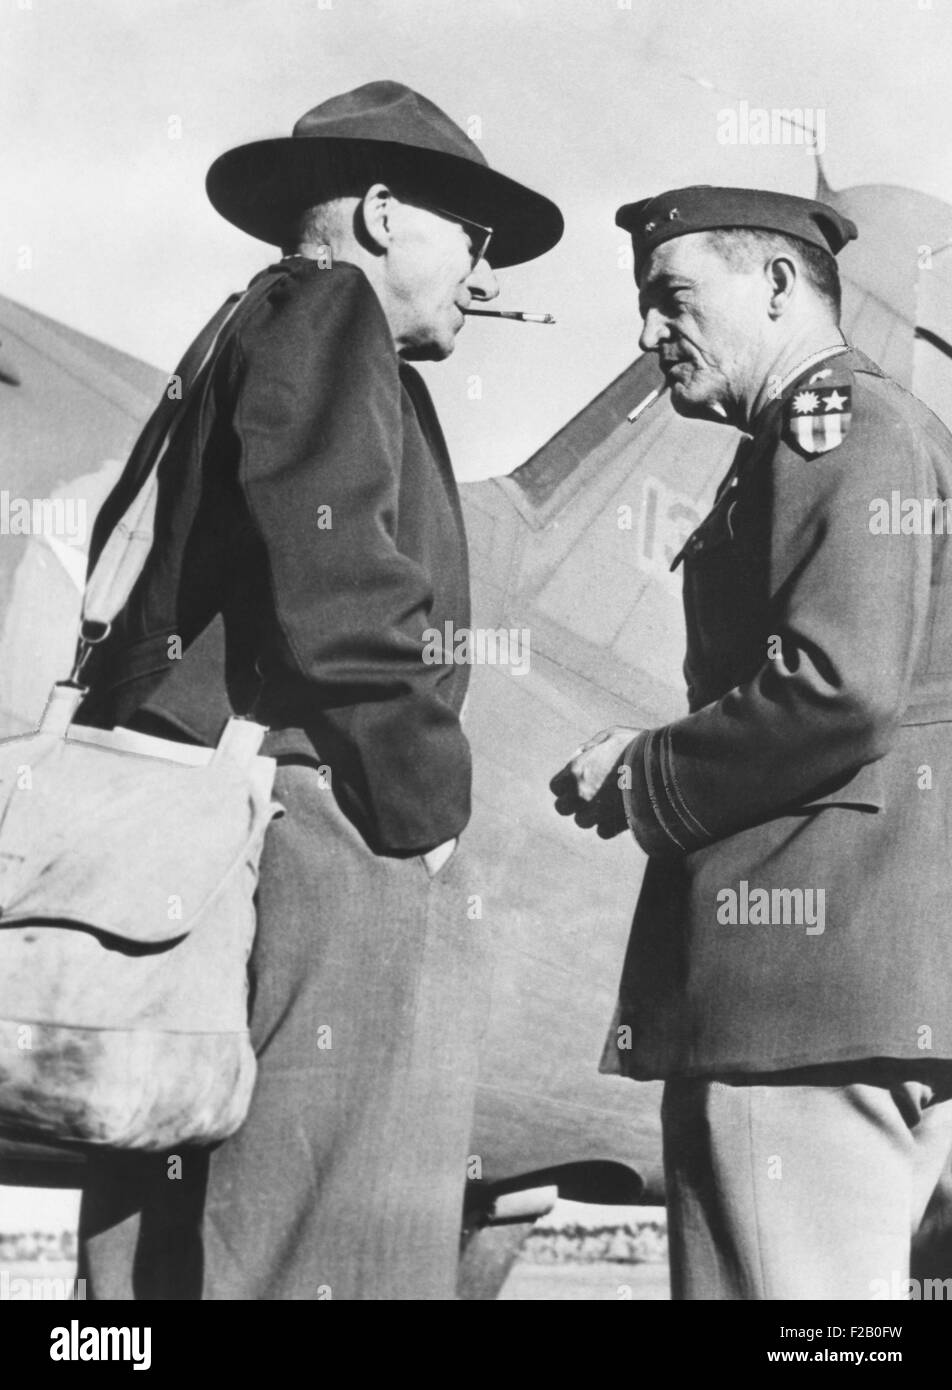 Gen. Joseph Stillwell (left) with Maj. Gen. Claire Chennault, Commander, 14th US Air Force in China. August 1943. - Stock Image